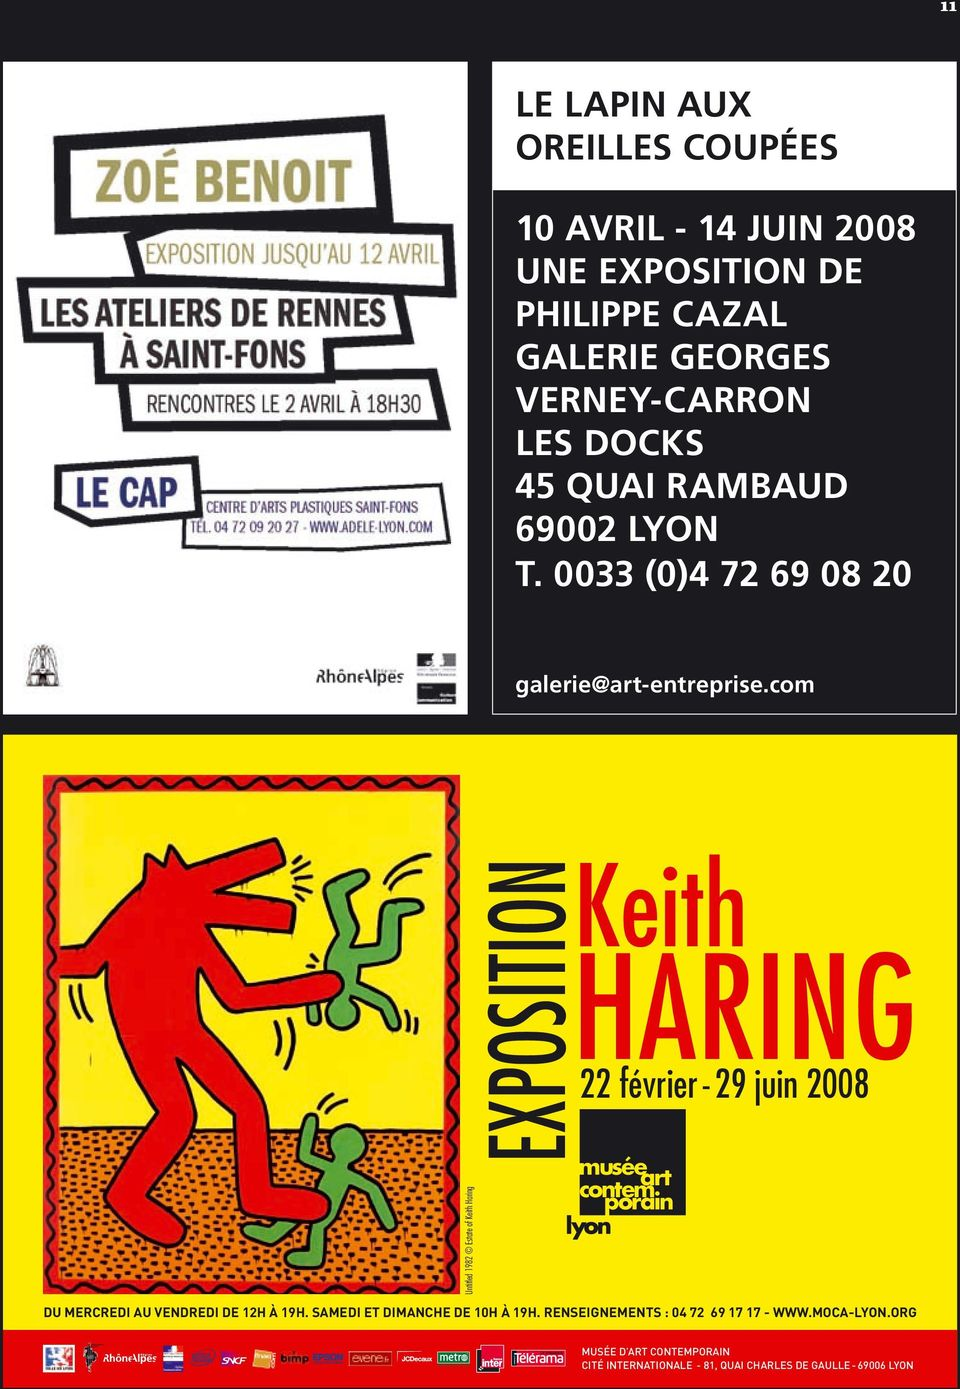 com Keith HARING Untitled 1982 Estate of Keith Haring EXPOSITION 22 février - 29 juin 2008 DU MERCREDI AU VENDREDI DE 12H À